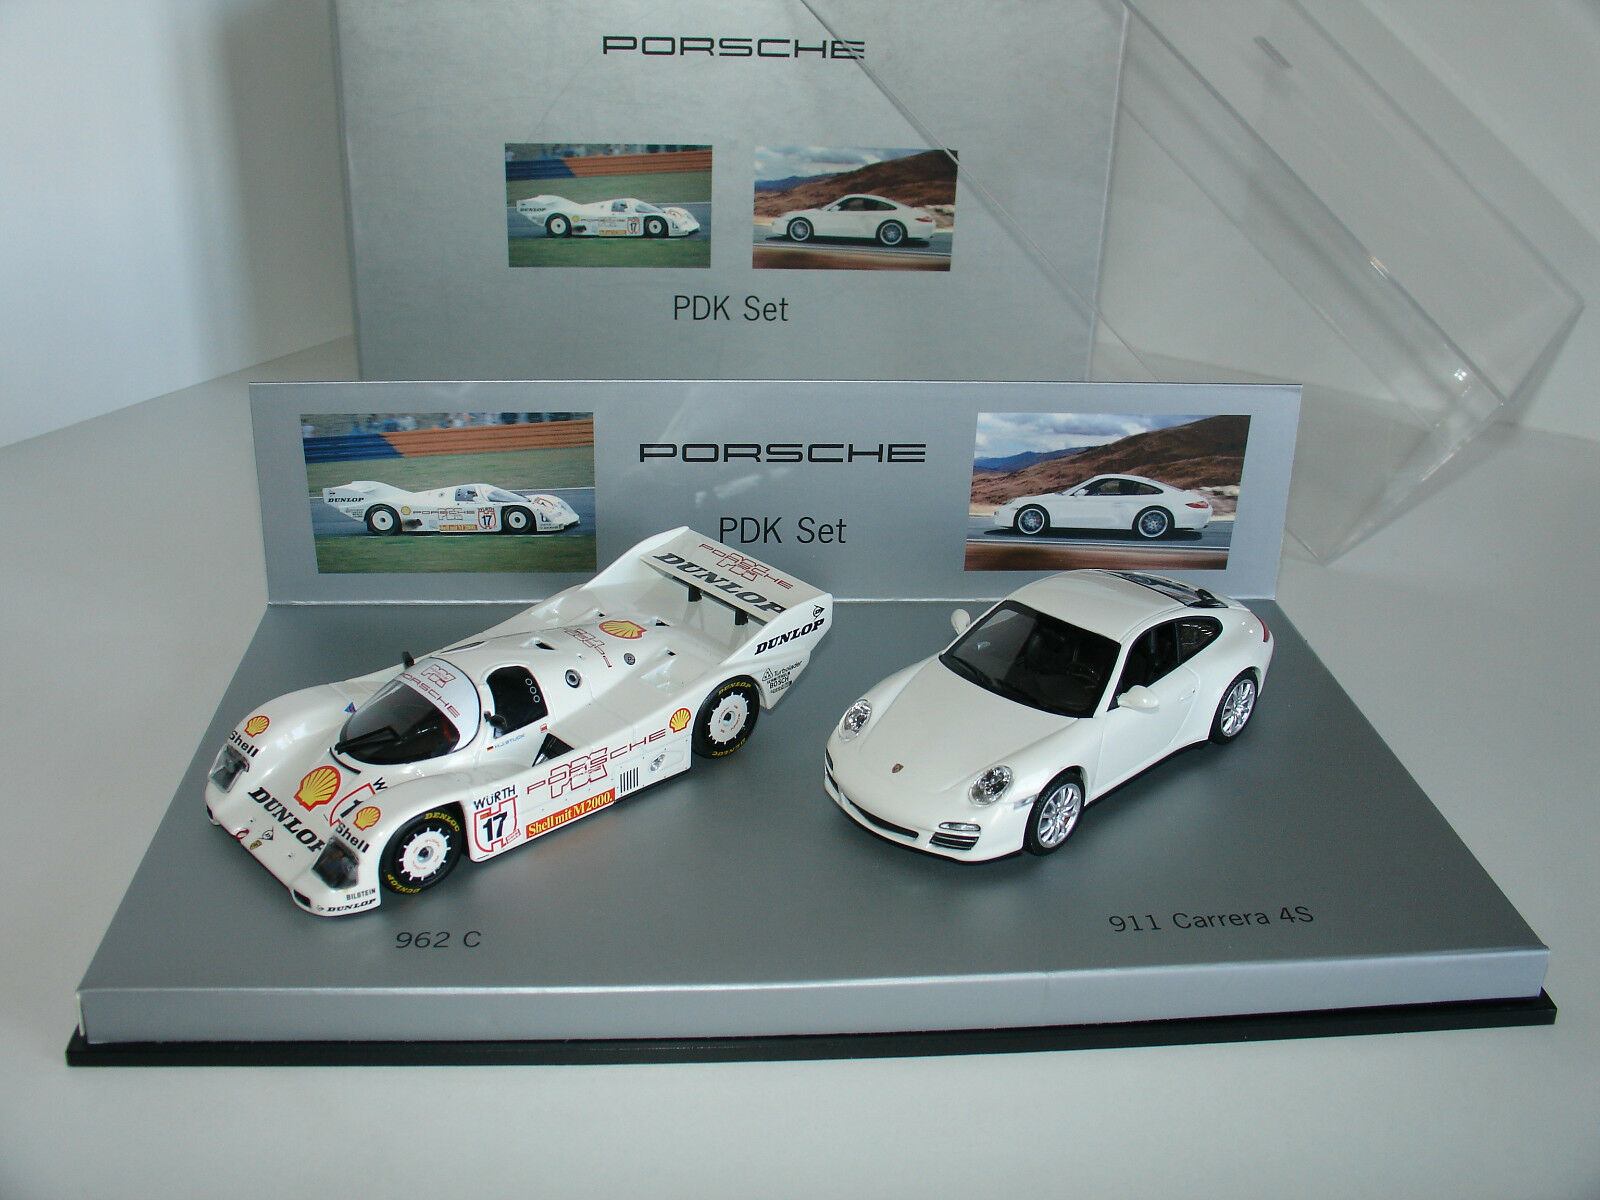 1 43 PORSCHE PDK SET WAP 020 SET 21 962C & 997 CARRERA 4S by MINICHAMPS